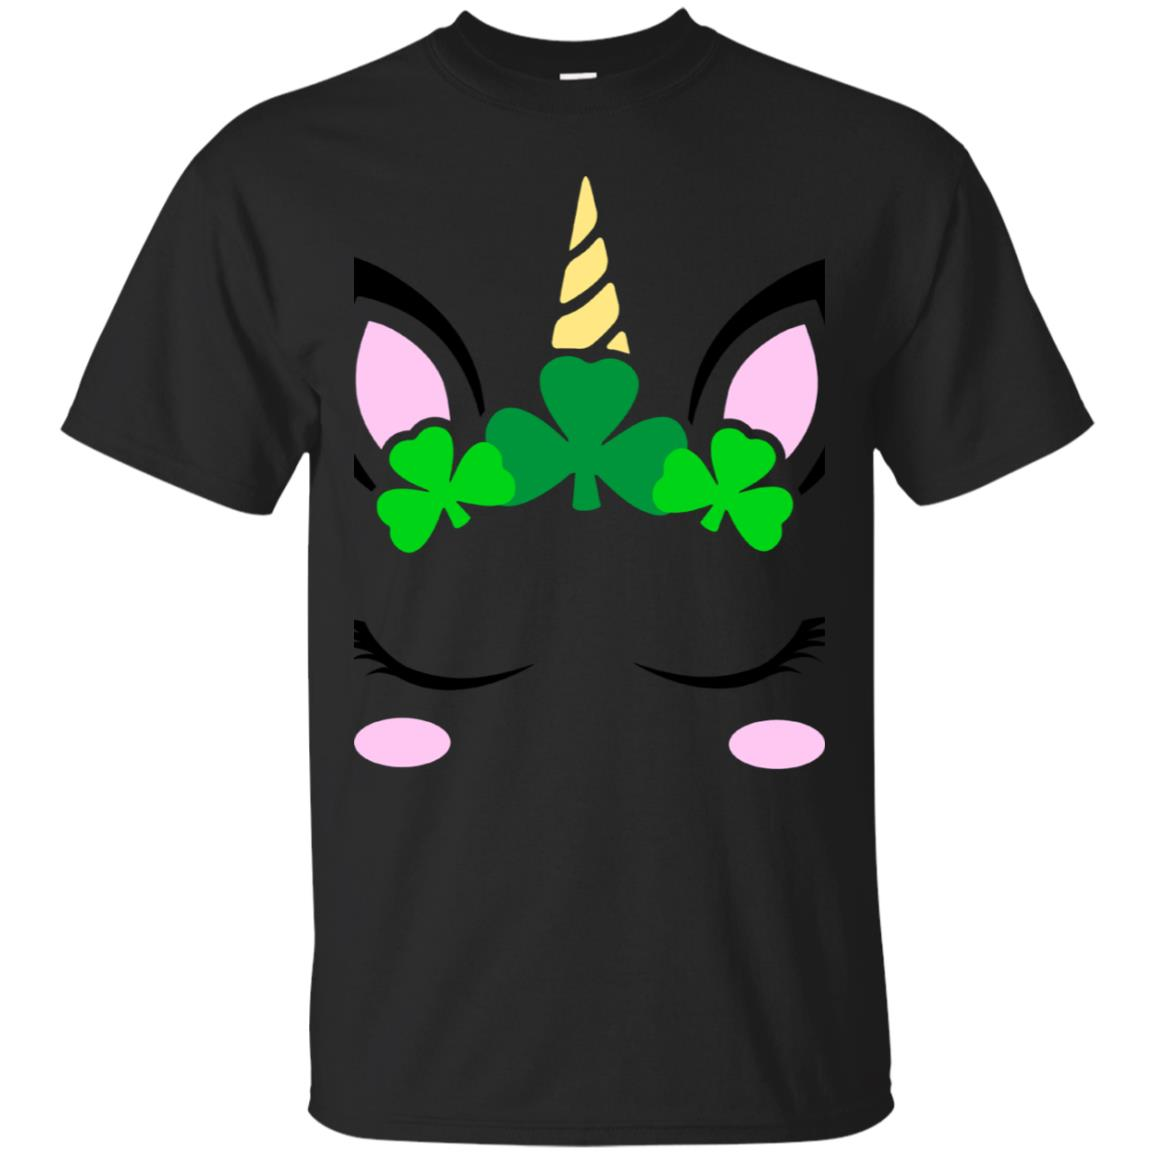 St. Patrick's Day Unicorn face T-Shirt 99promocode